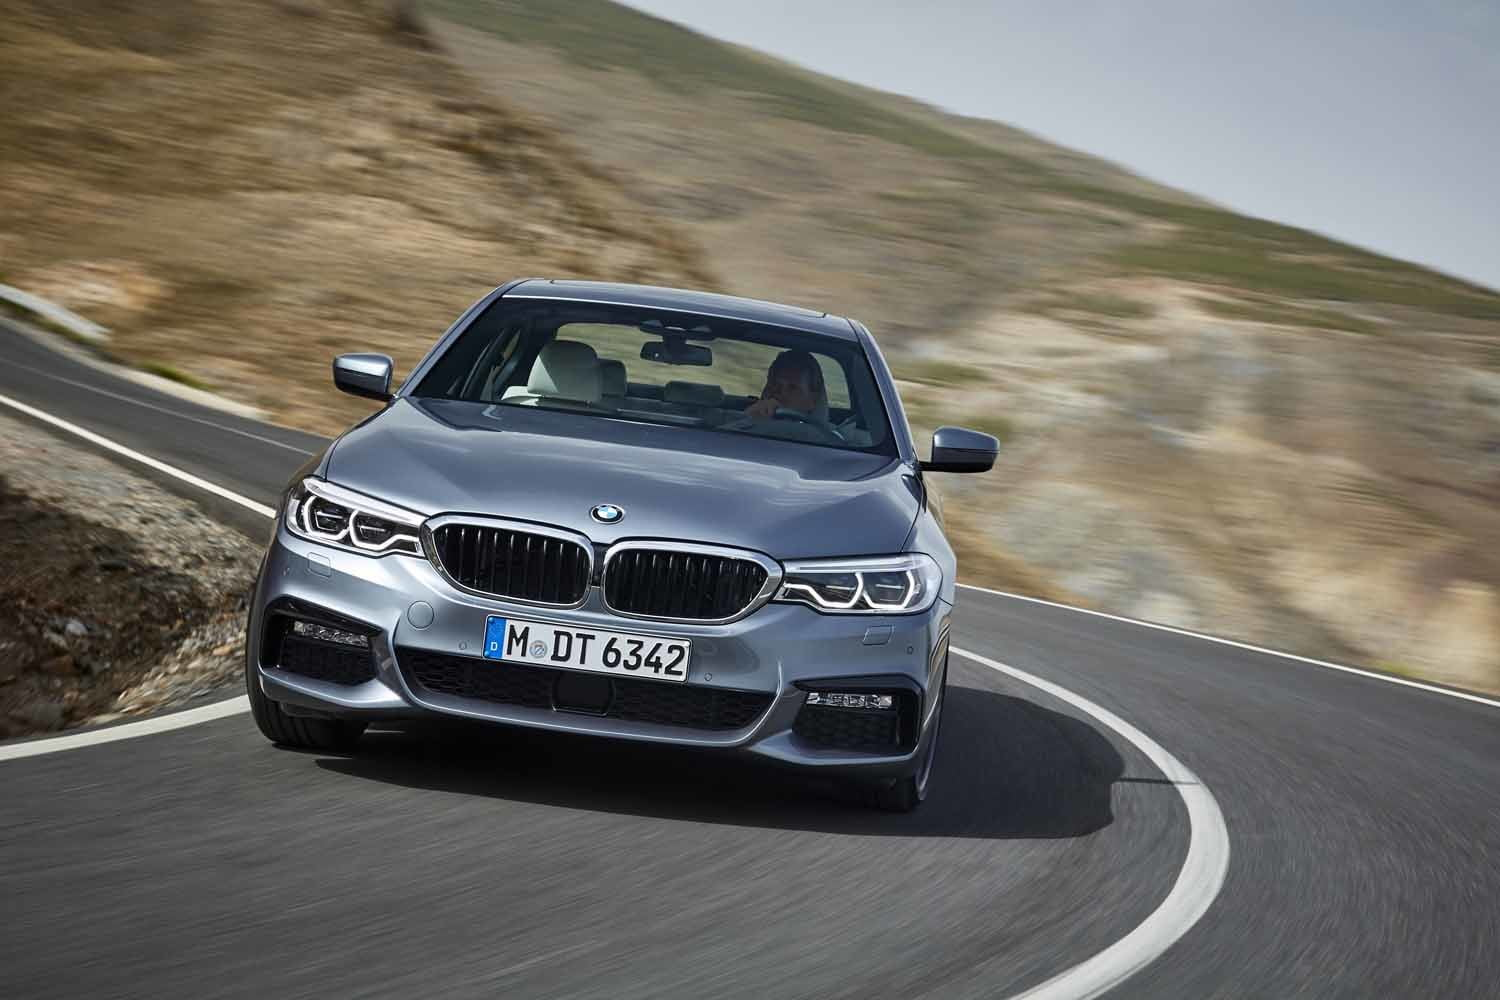 2017 bmw 5 series news pictures performance specs 21